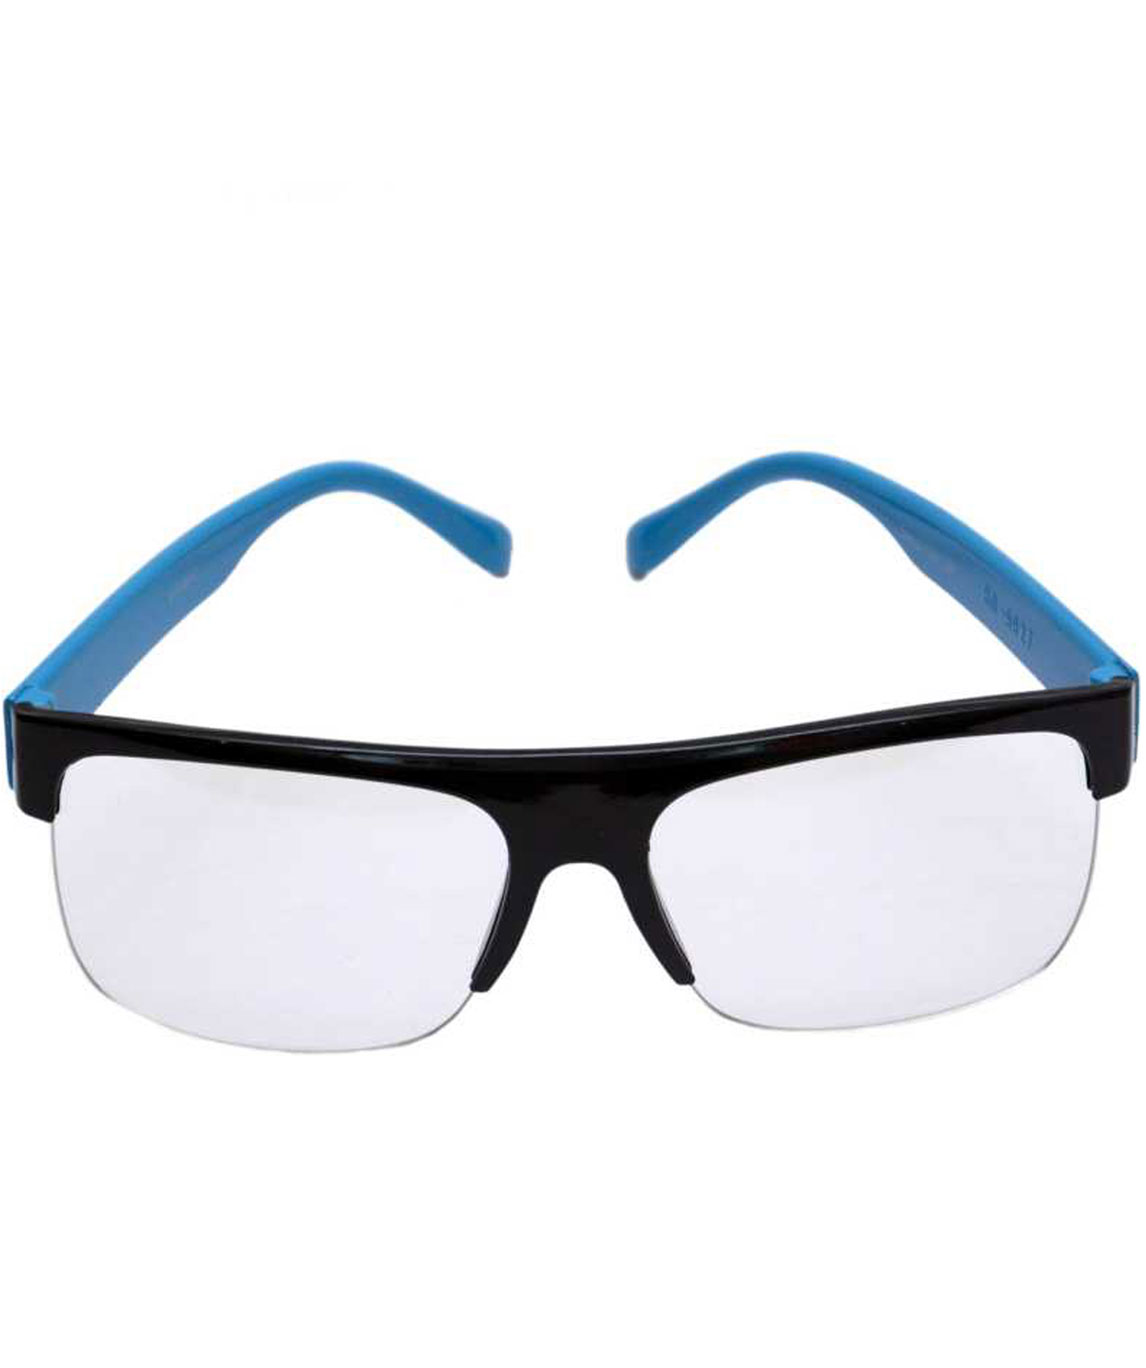 SPECTACLE SUNGLASSES (55) (CLEAR, BLUE)